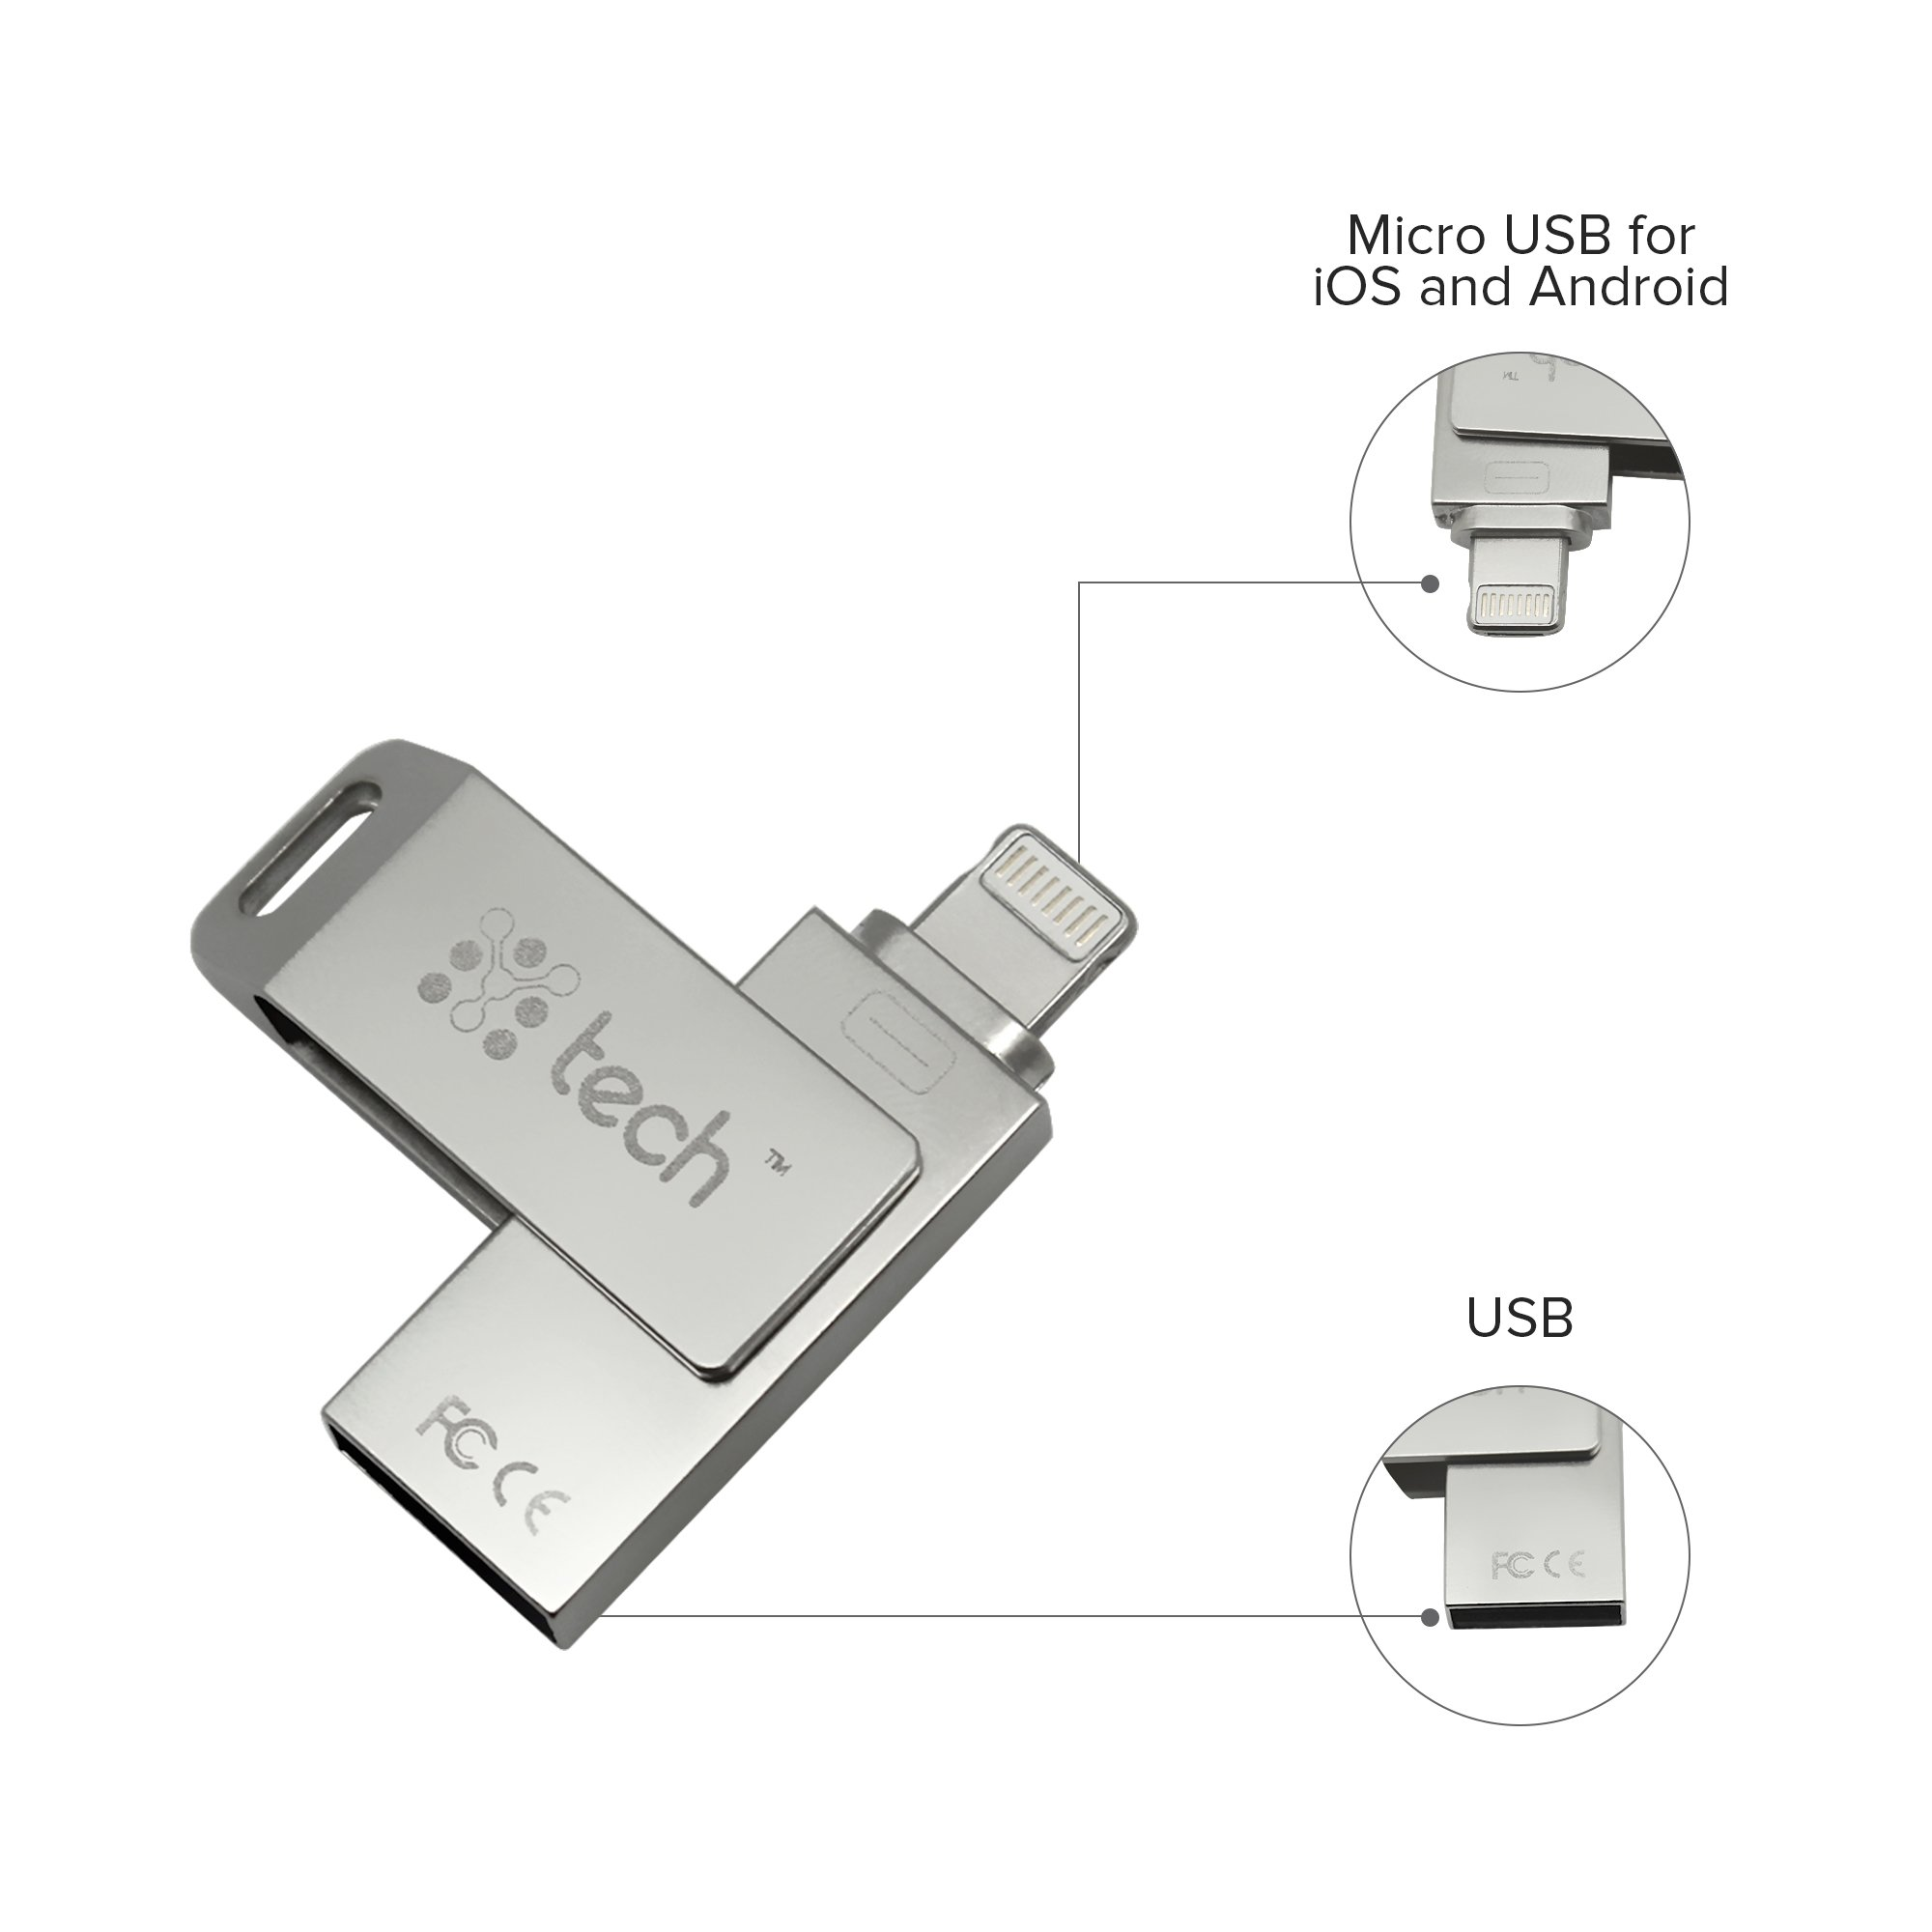 Ytech Flash Drive 3 In 1, 256 Gb, IPhone, Android, PC, IOS Flash Drive, Android Flash Drive, Slim Flash Drive for IPhone, IPad, Memory Stick With Extended Lightning Connector, Ytech External Storage E by YTech (Image #3)